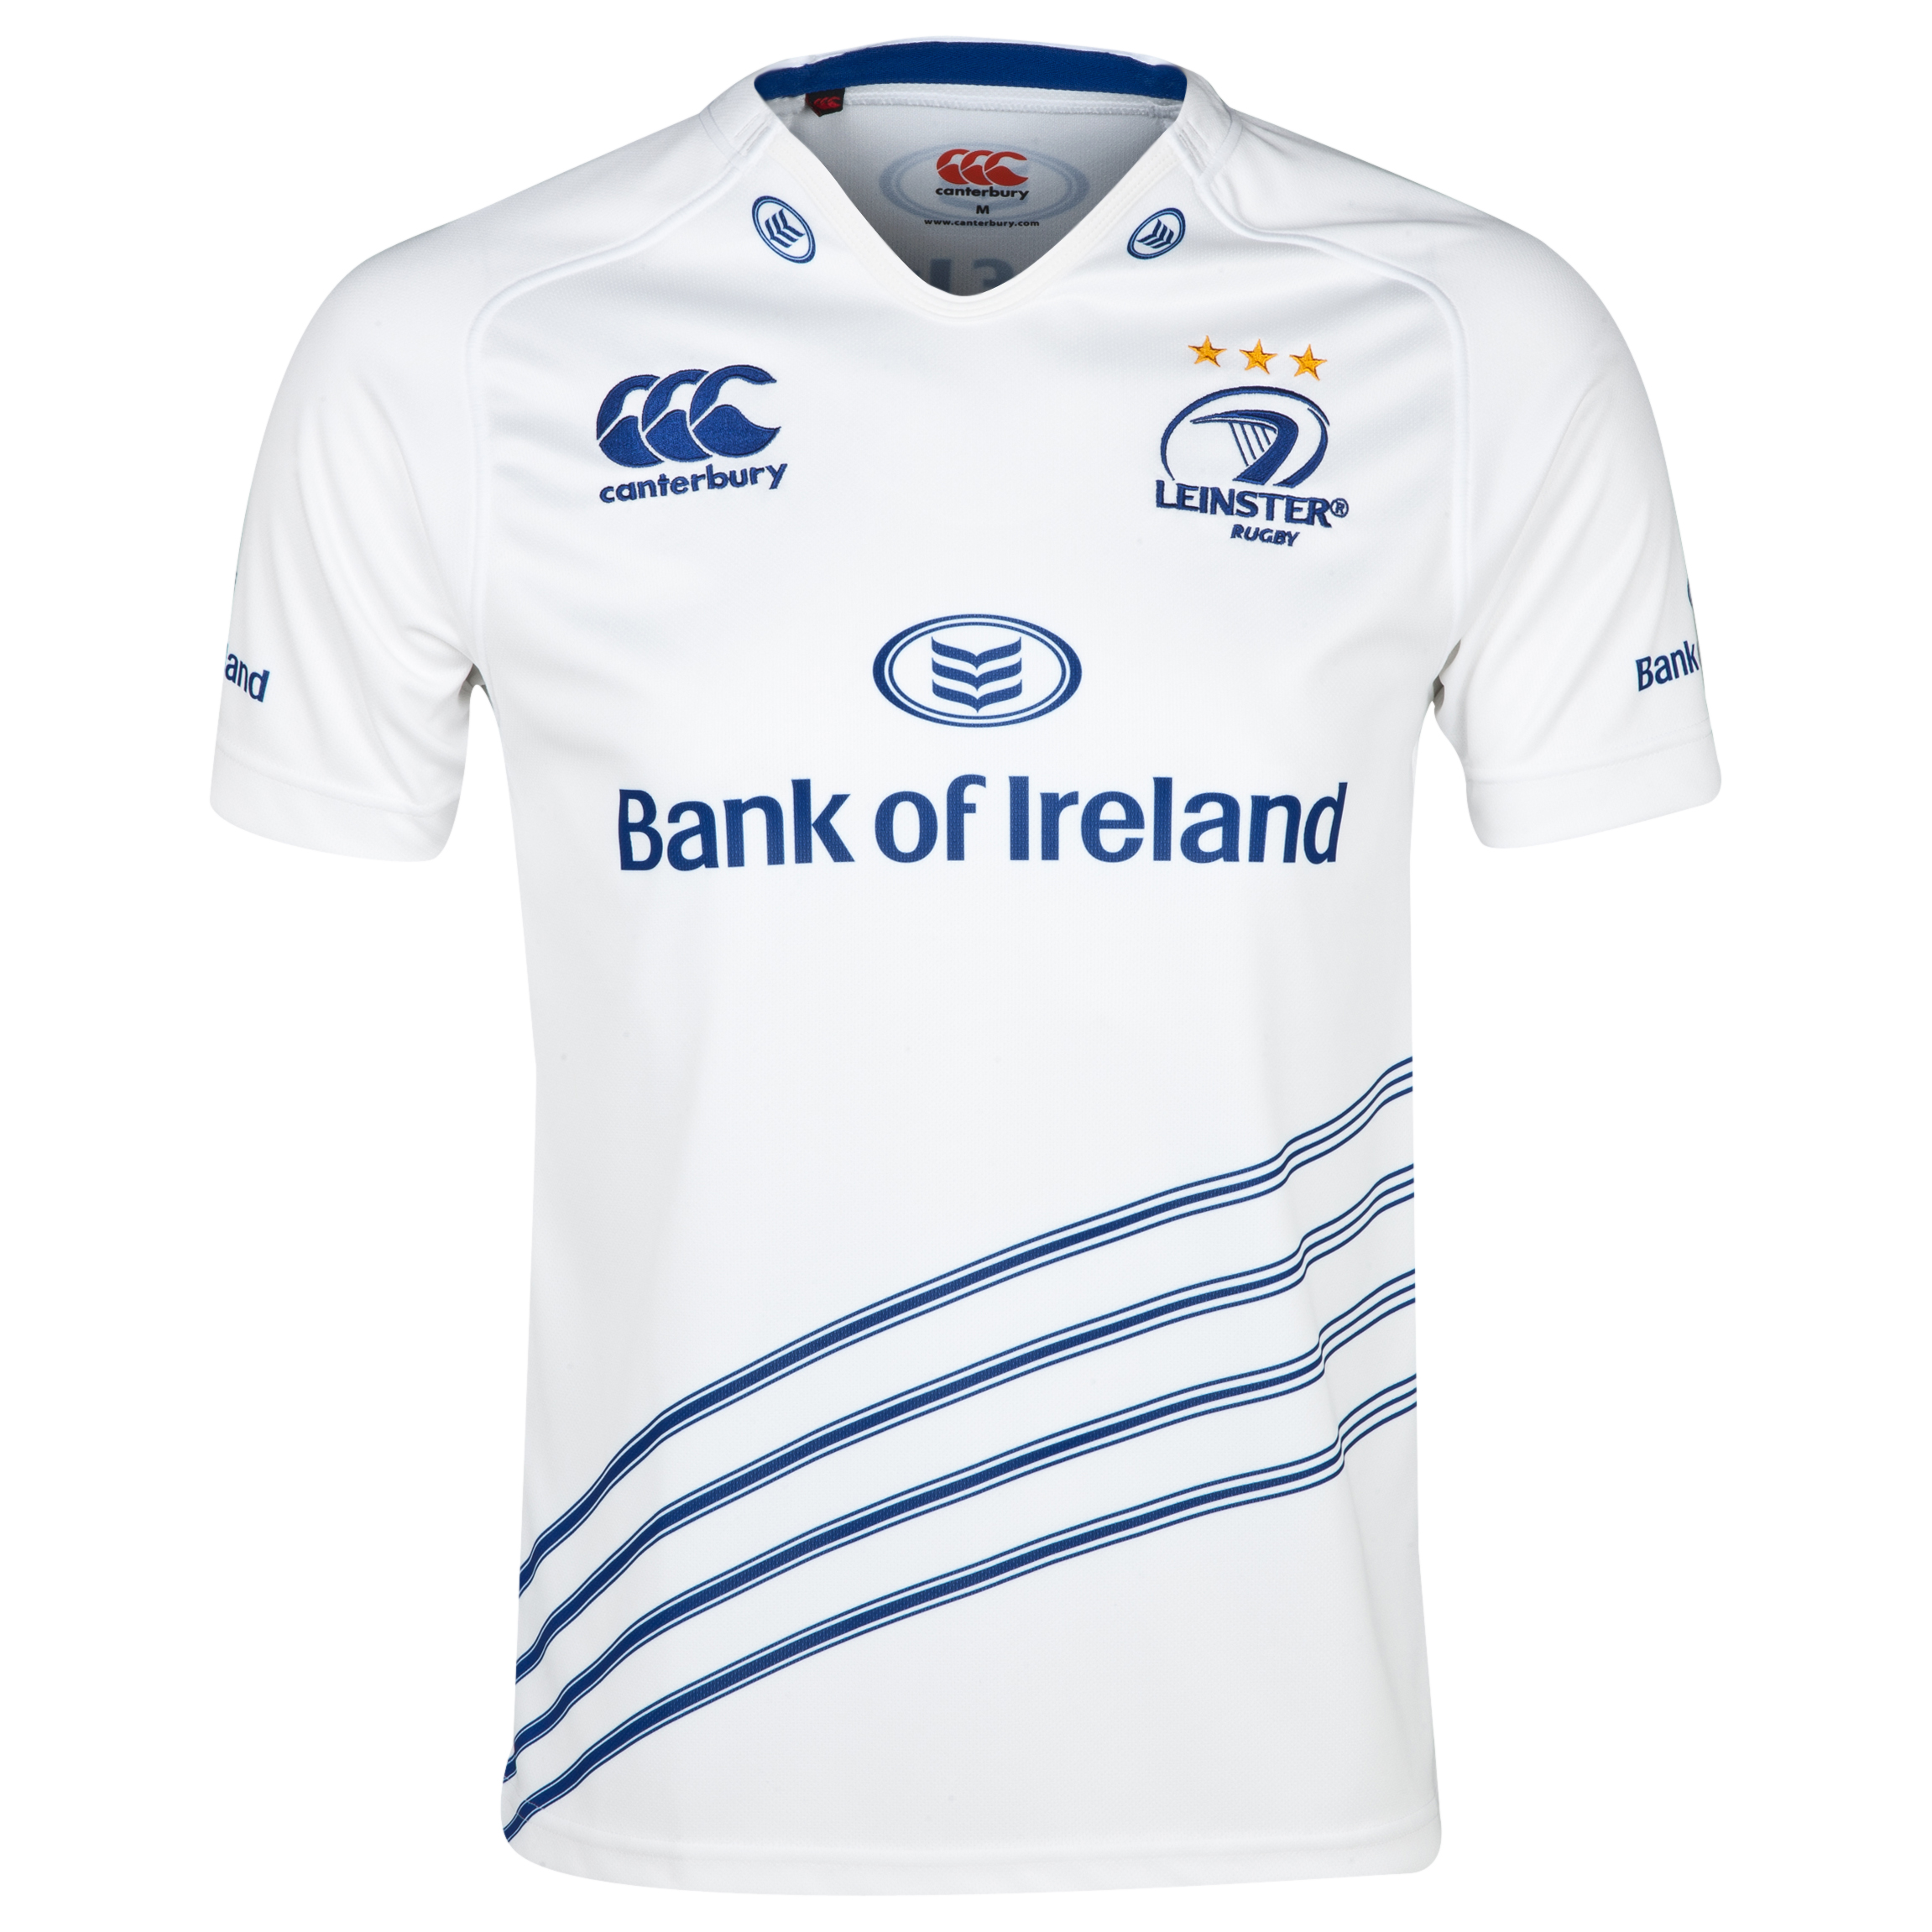 Leinster Alternate Pro Rugby Shirt 2013/14 - White/Leinster Blue White